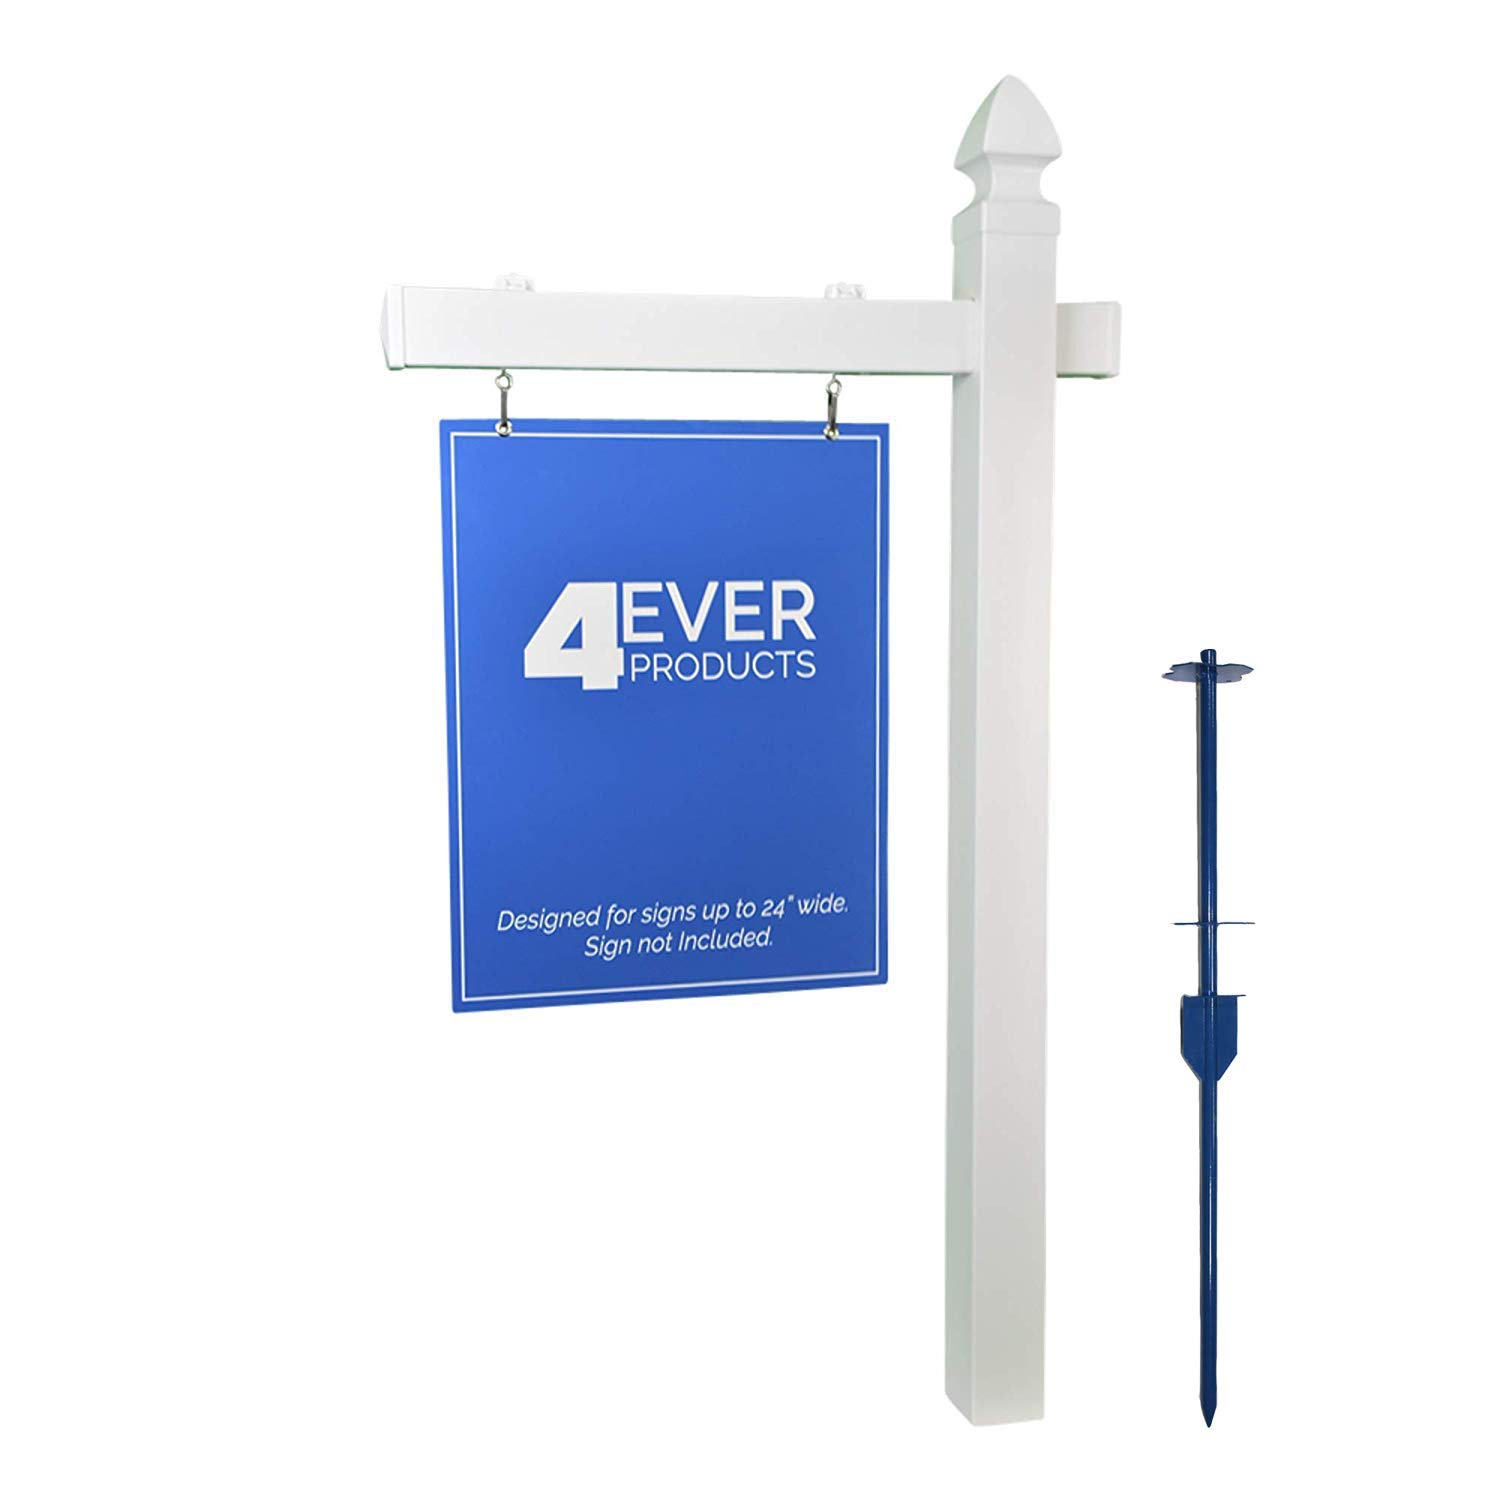 e7a8e676ad27 Amazon.com : 4EVER Vinyl PVC Real Estate Sign Post - White (Single) : Home  And Garden Products : Garden & Outdoor